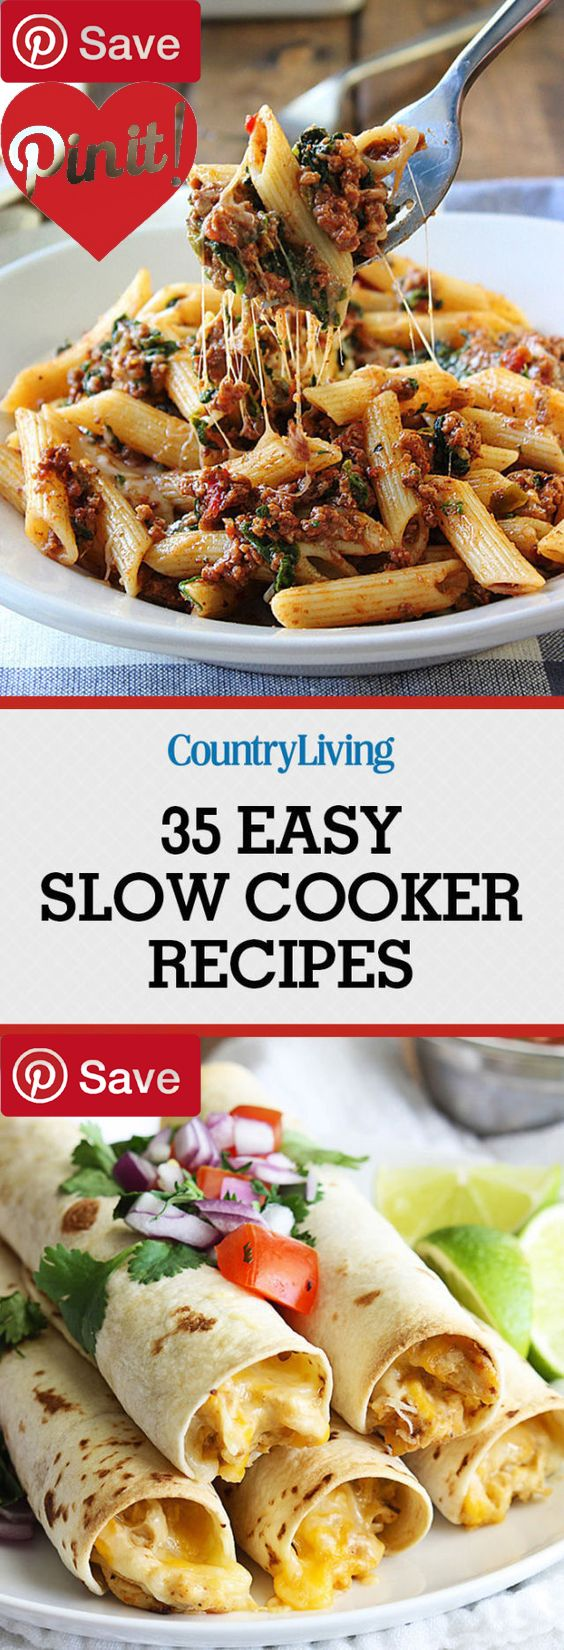 40 Easy Slow Cooker Recipes for Busy Fall Nights - #delicious #diy #Easy #food #love #recipe #recipes #tutorial #yummy @ICookUEat - Make sure to follow @ICookUEat cause we post alot of food recipes and DIY we post Food and drinks gifts animals and pets and sometimes art and of course Diy and crafts films music garden hair and beauty and make up health and fitness and yes we do post women's fashion sometimes and even wedding ideas travel and sport science and nature products and photography…